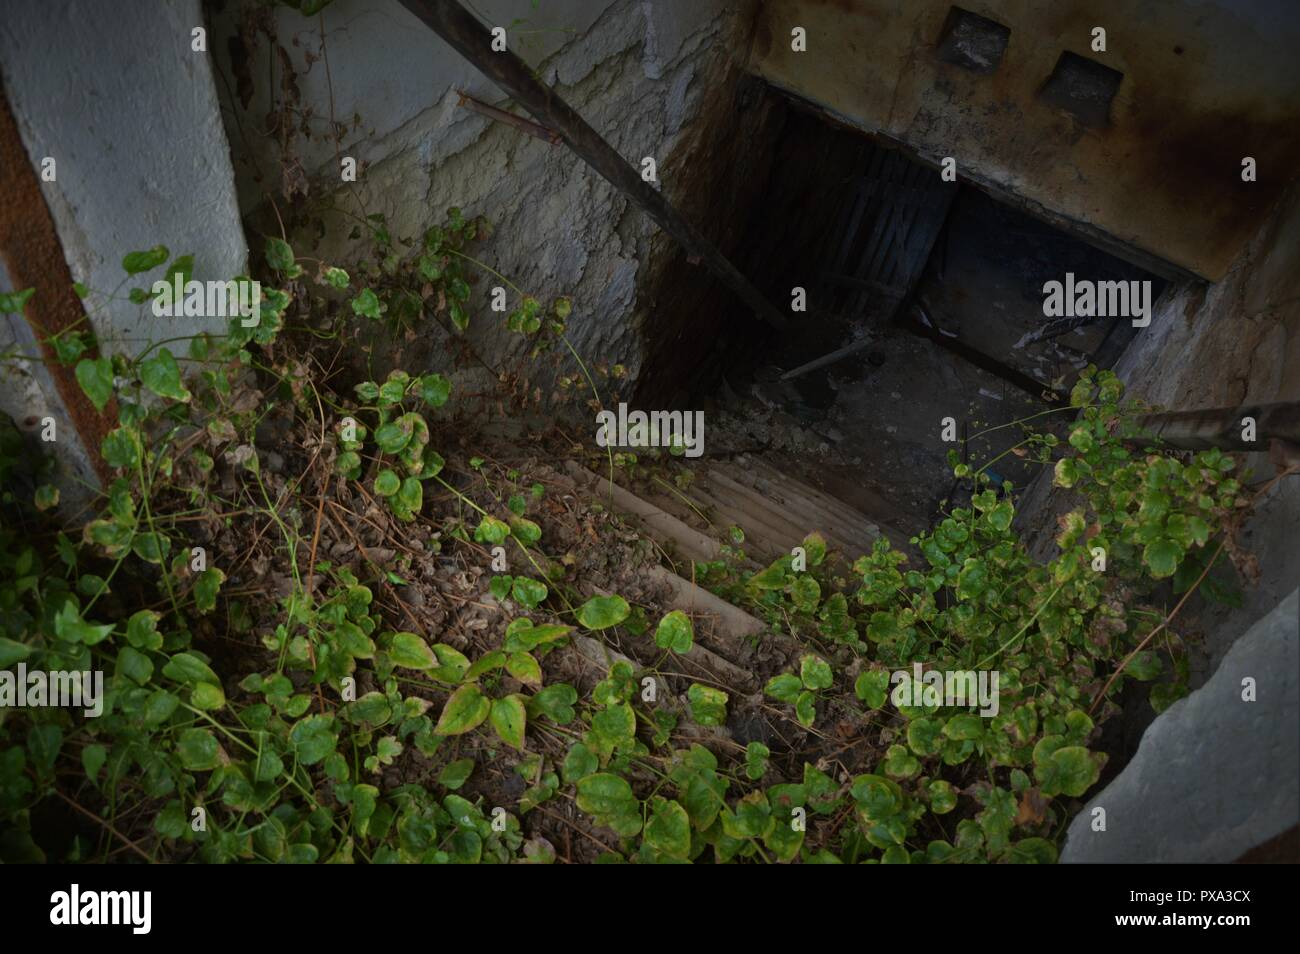 Entry of an abandoned cellar - horroristic scene from above Stock Photo